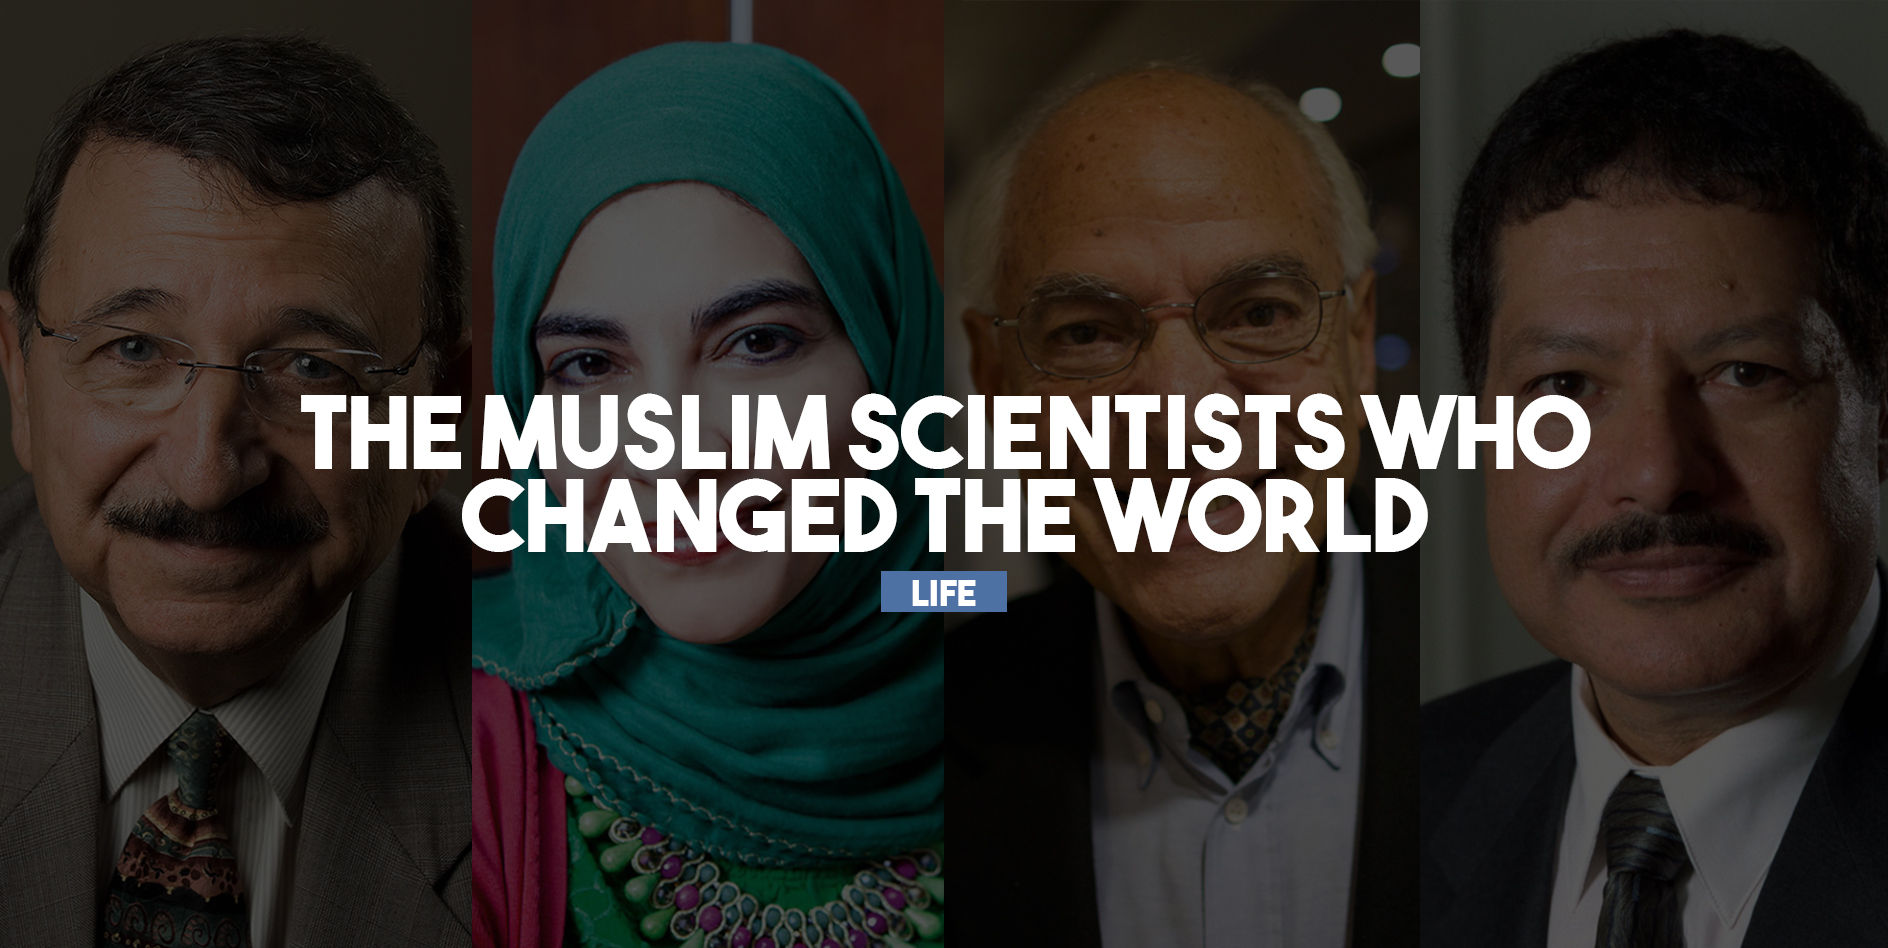 muslimscientists.jpg